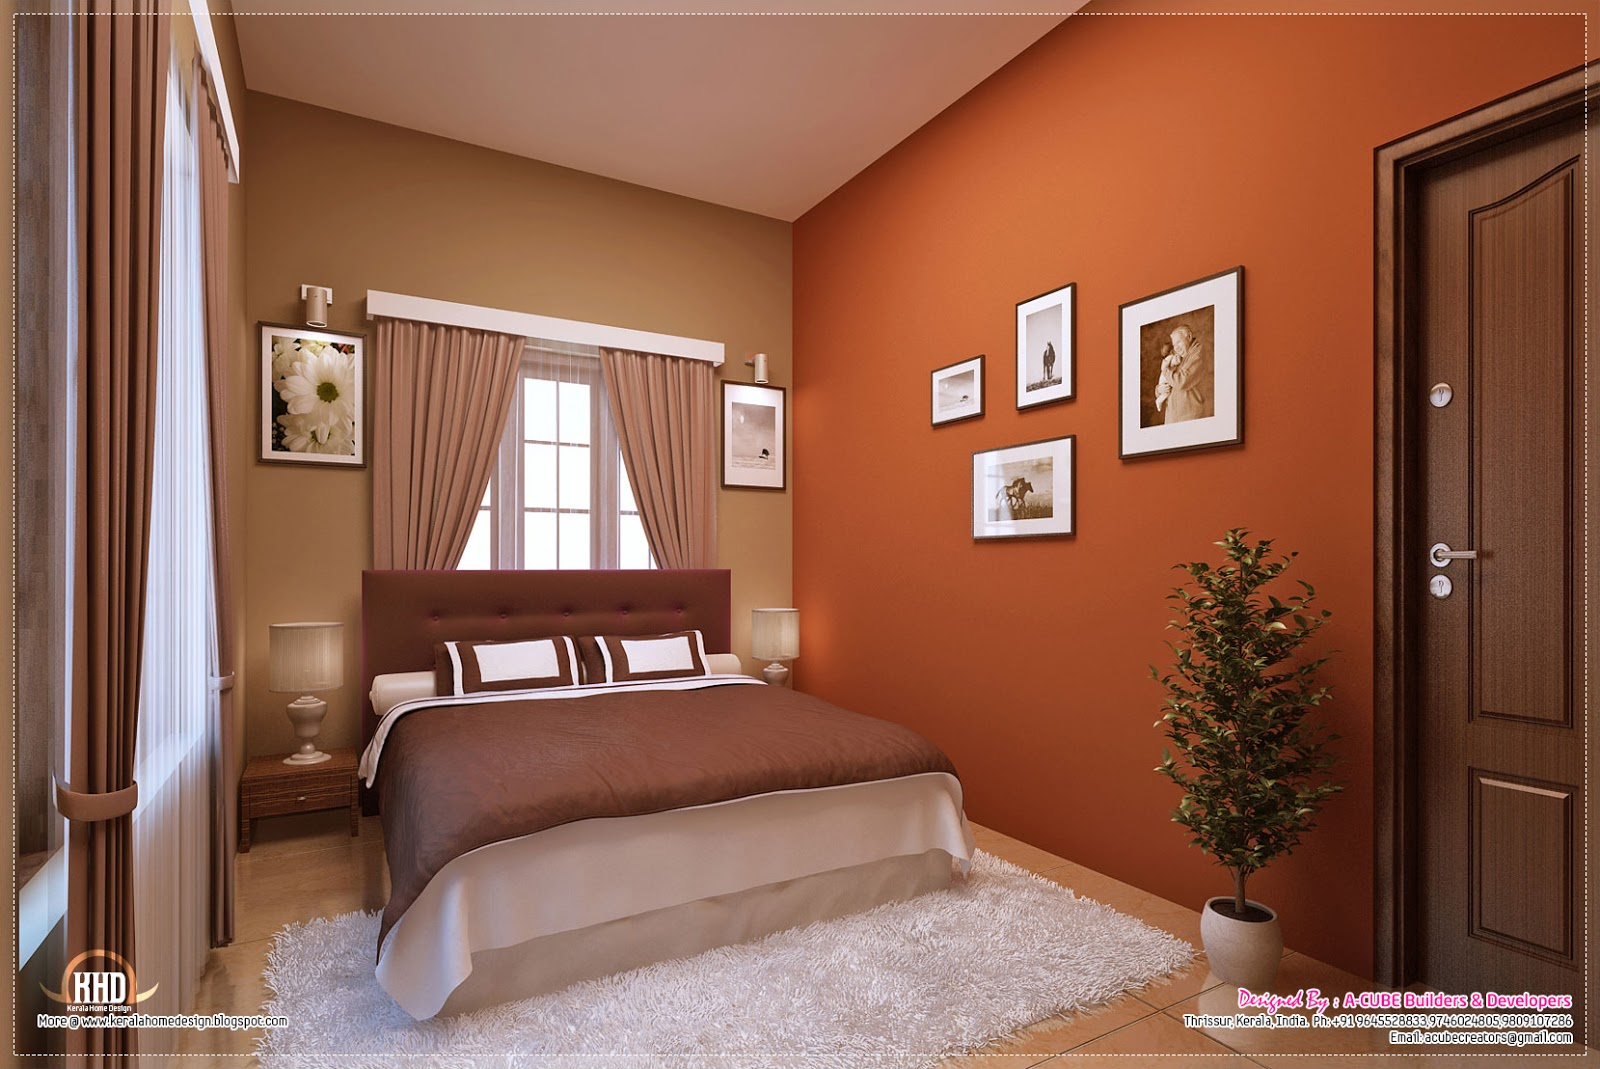 Awesome interior decoration ideas kerala home design and for Good interior design for bedroom